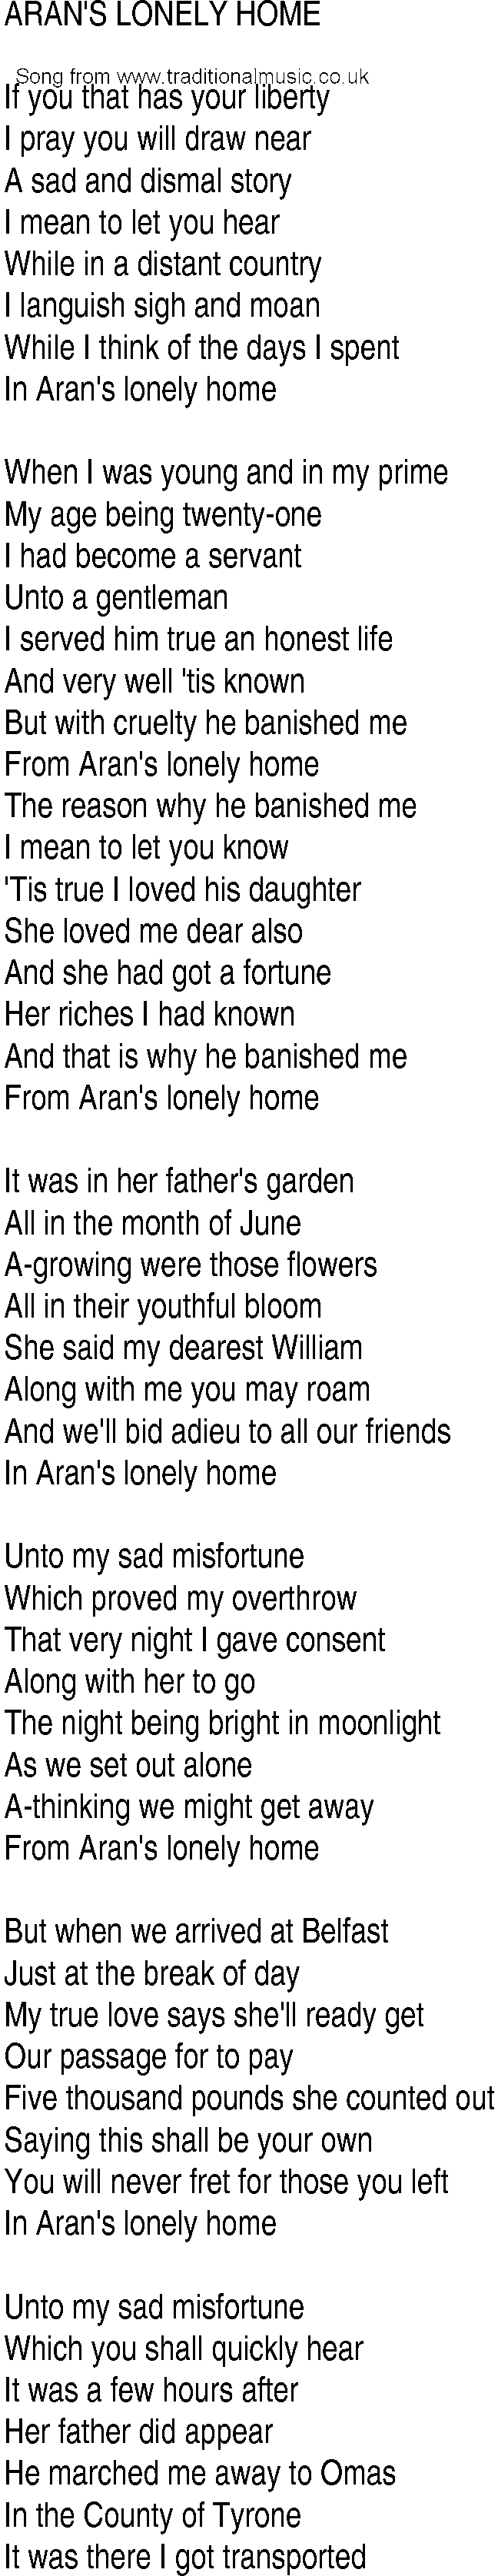 Irish Music Song And Ballad Lyrics For Arans Lonely Home